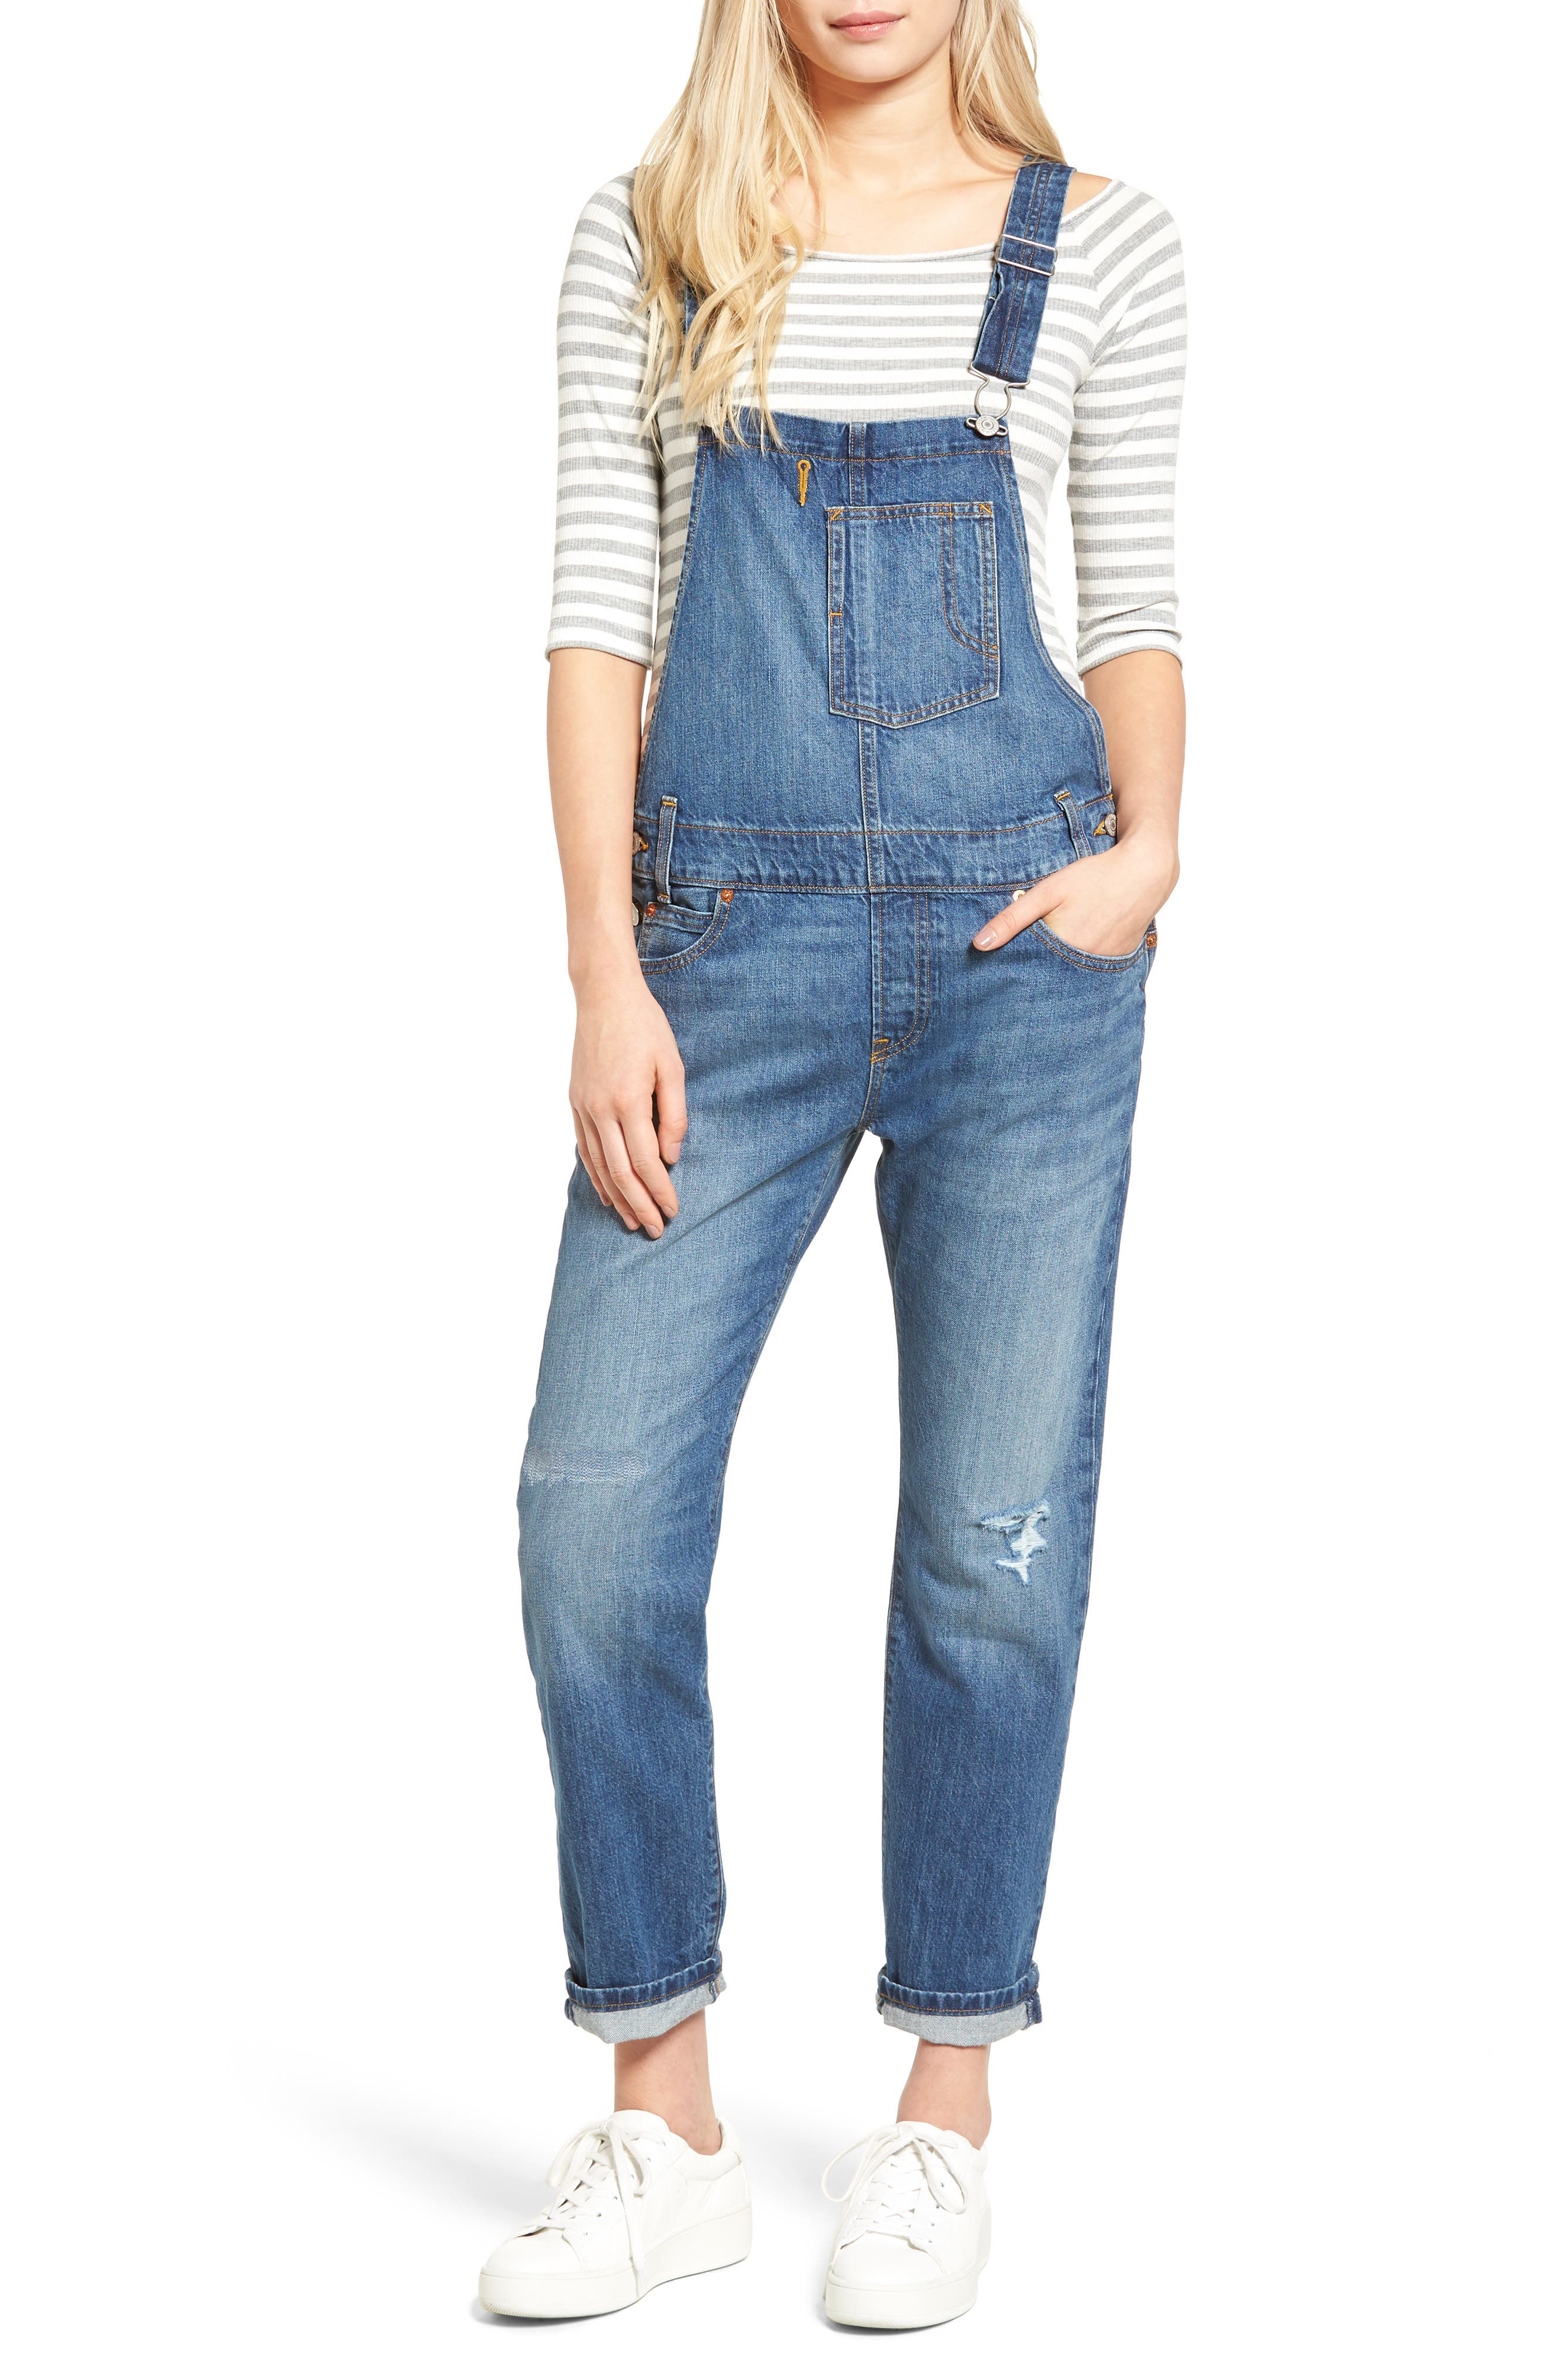 Alternate Image 1 Selected - Levi's® Heritage Denim Overalls (Gold Rush Blue)